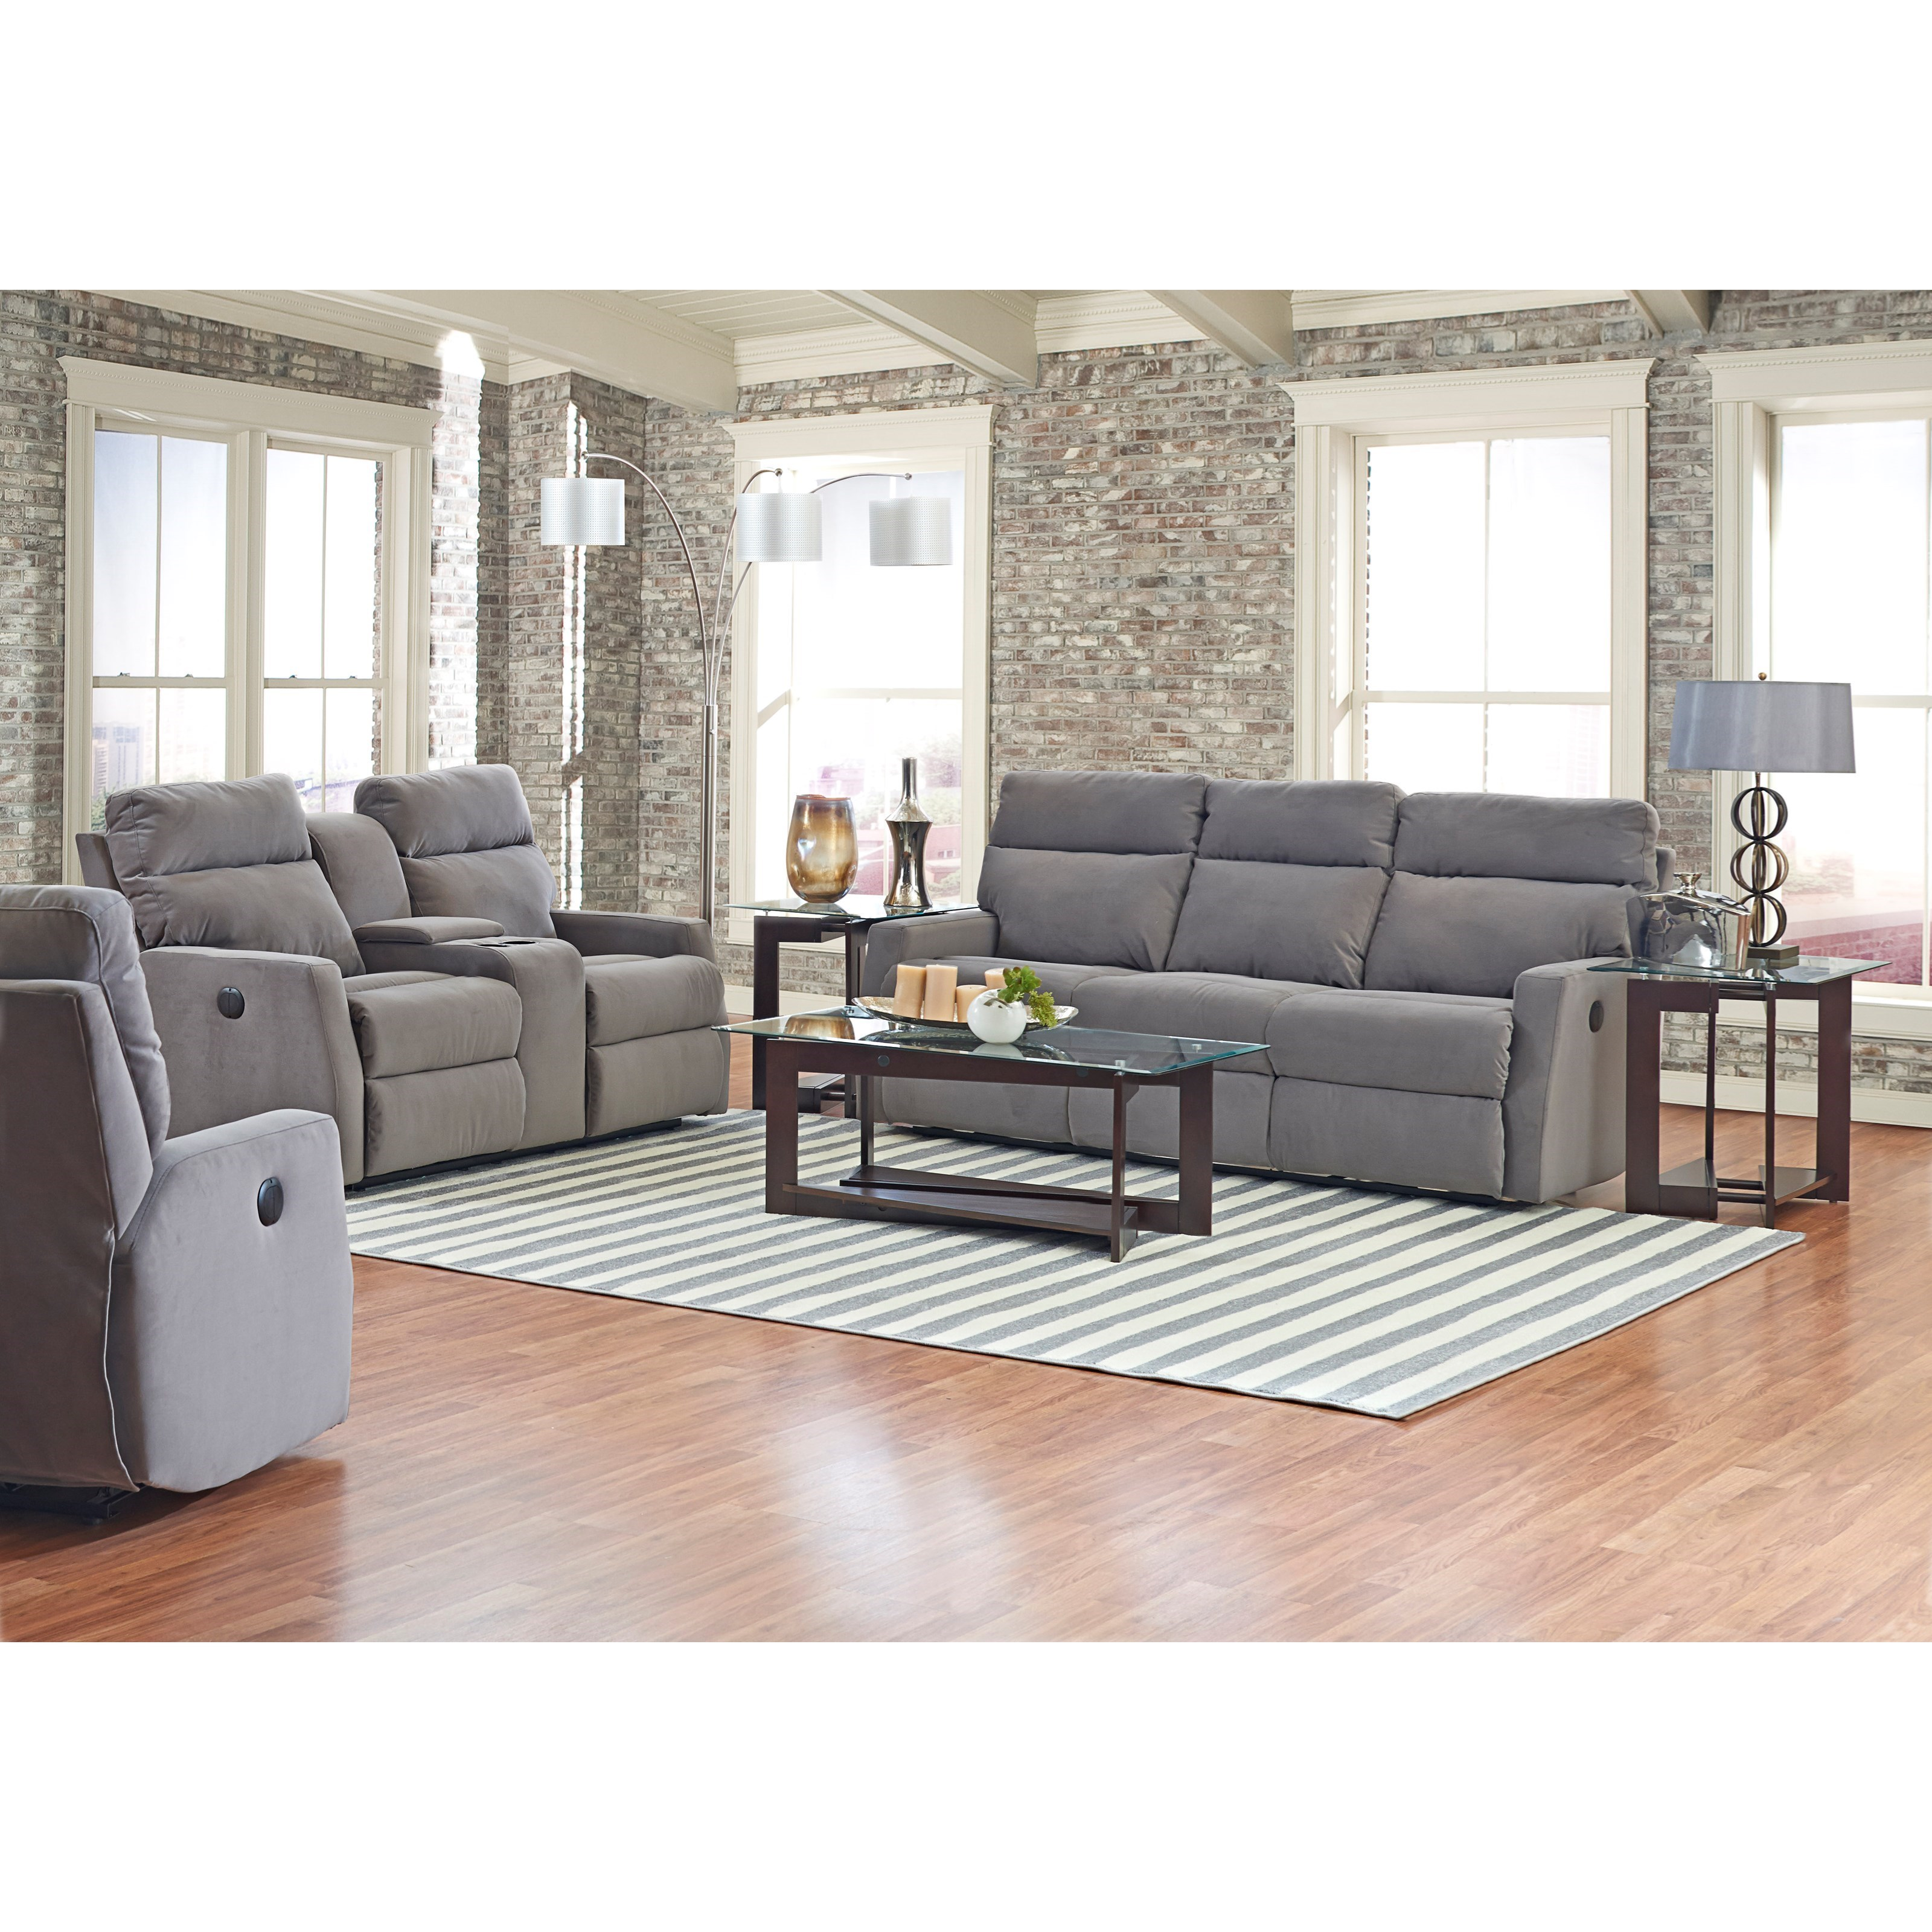 Klaussner Monticello Reclining Loveseat With Cupholder